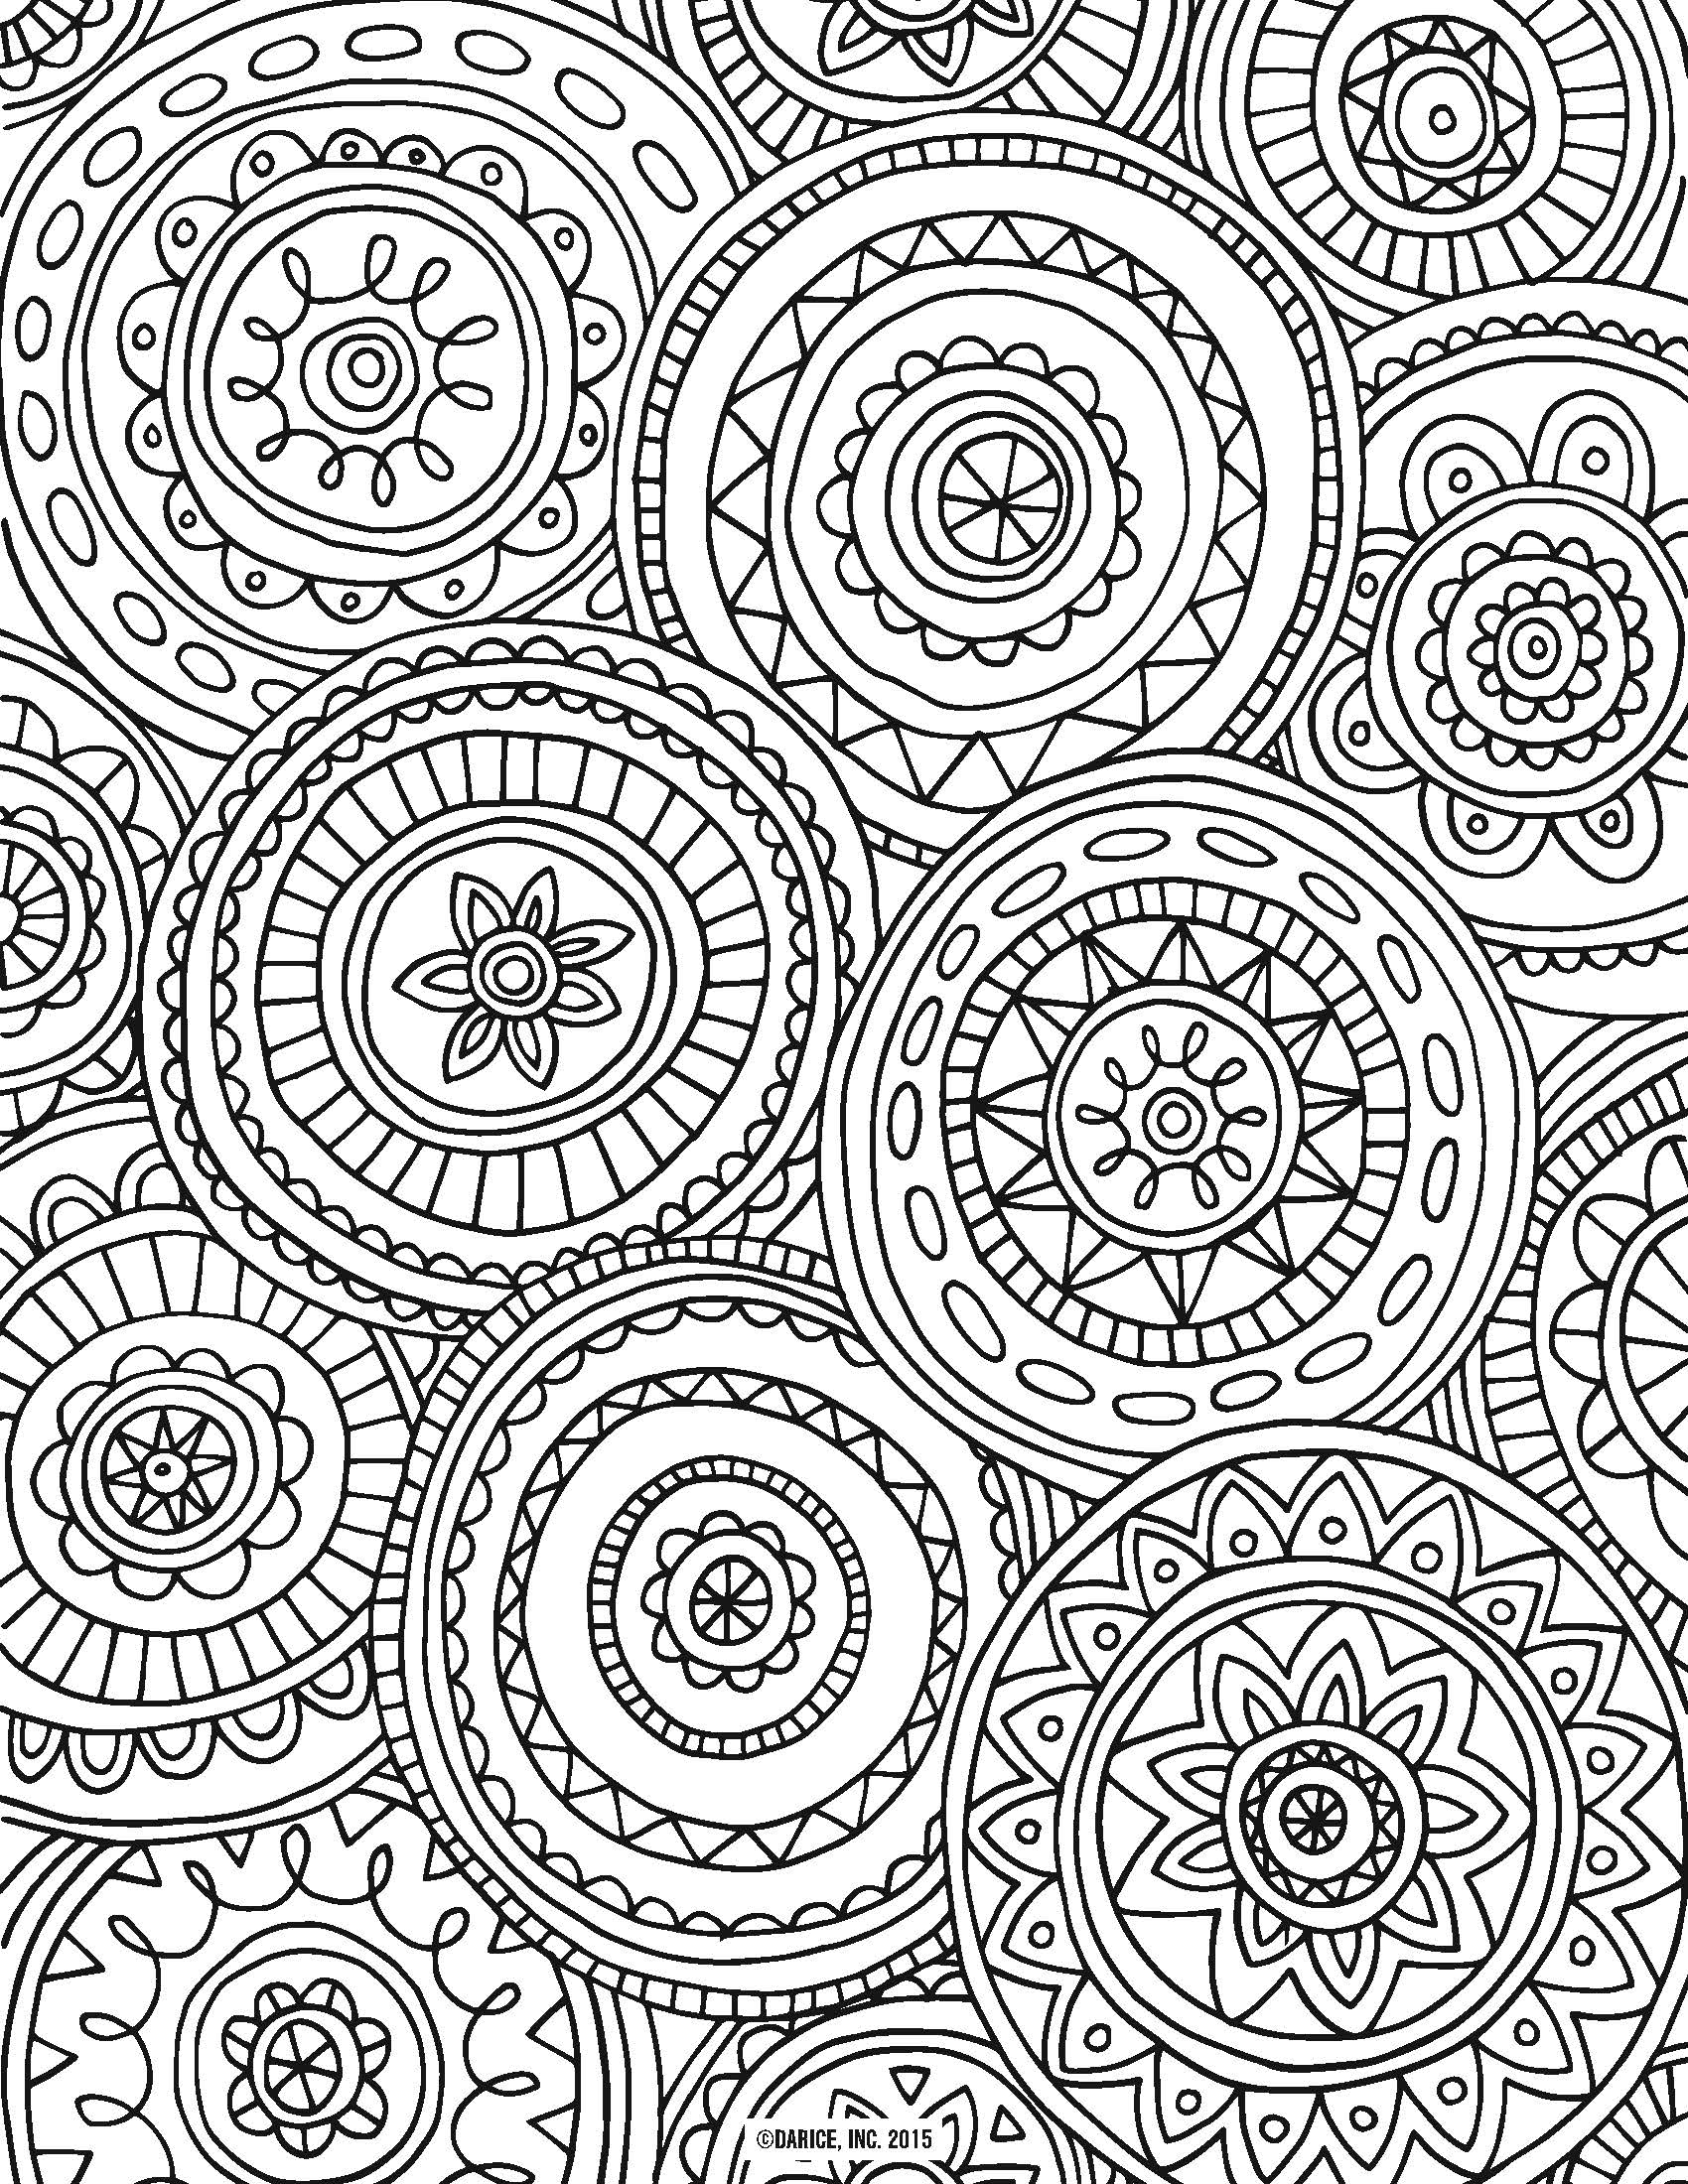 19 of the best colouring pages free printables for everyone - Free Cool Coloring Pages For Adults